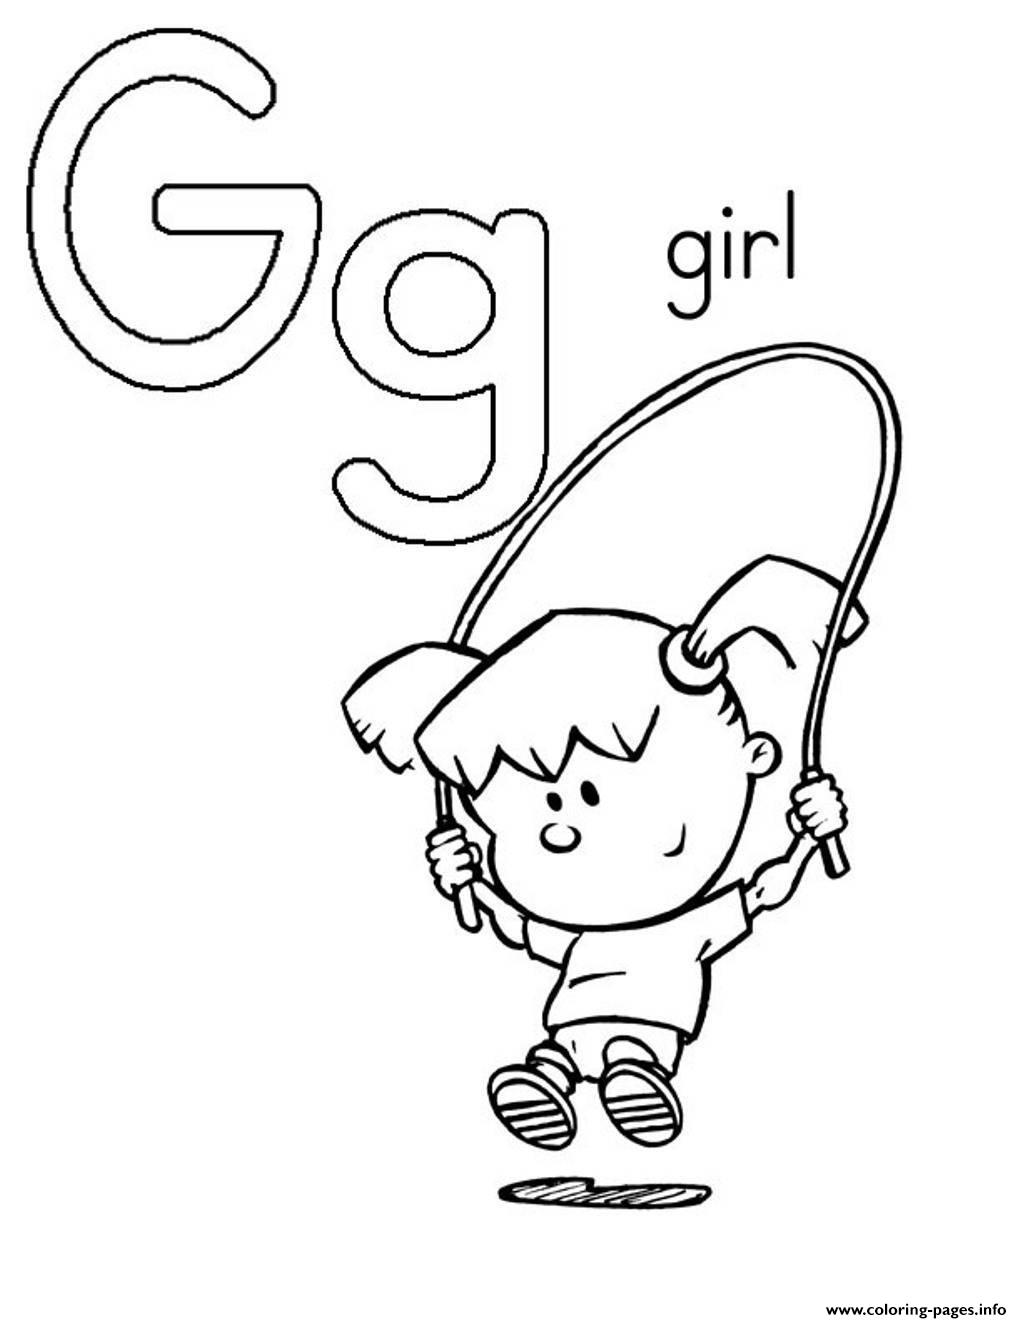 g coloring pages print - photo #7